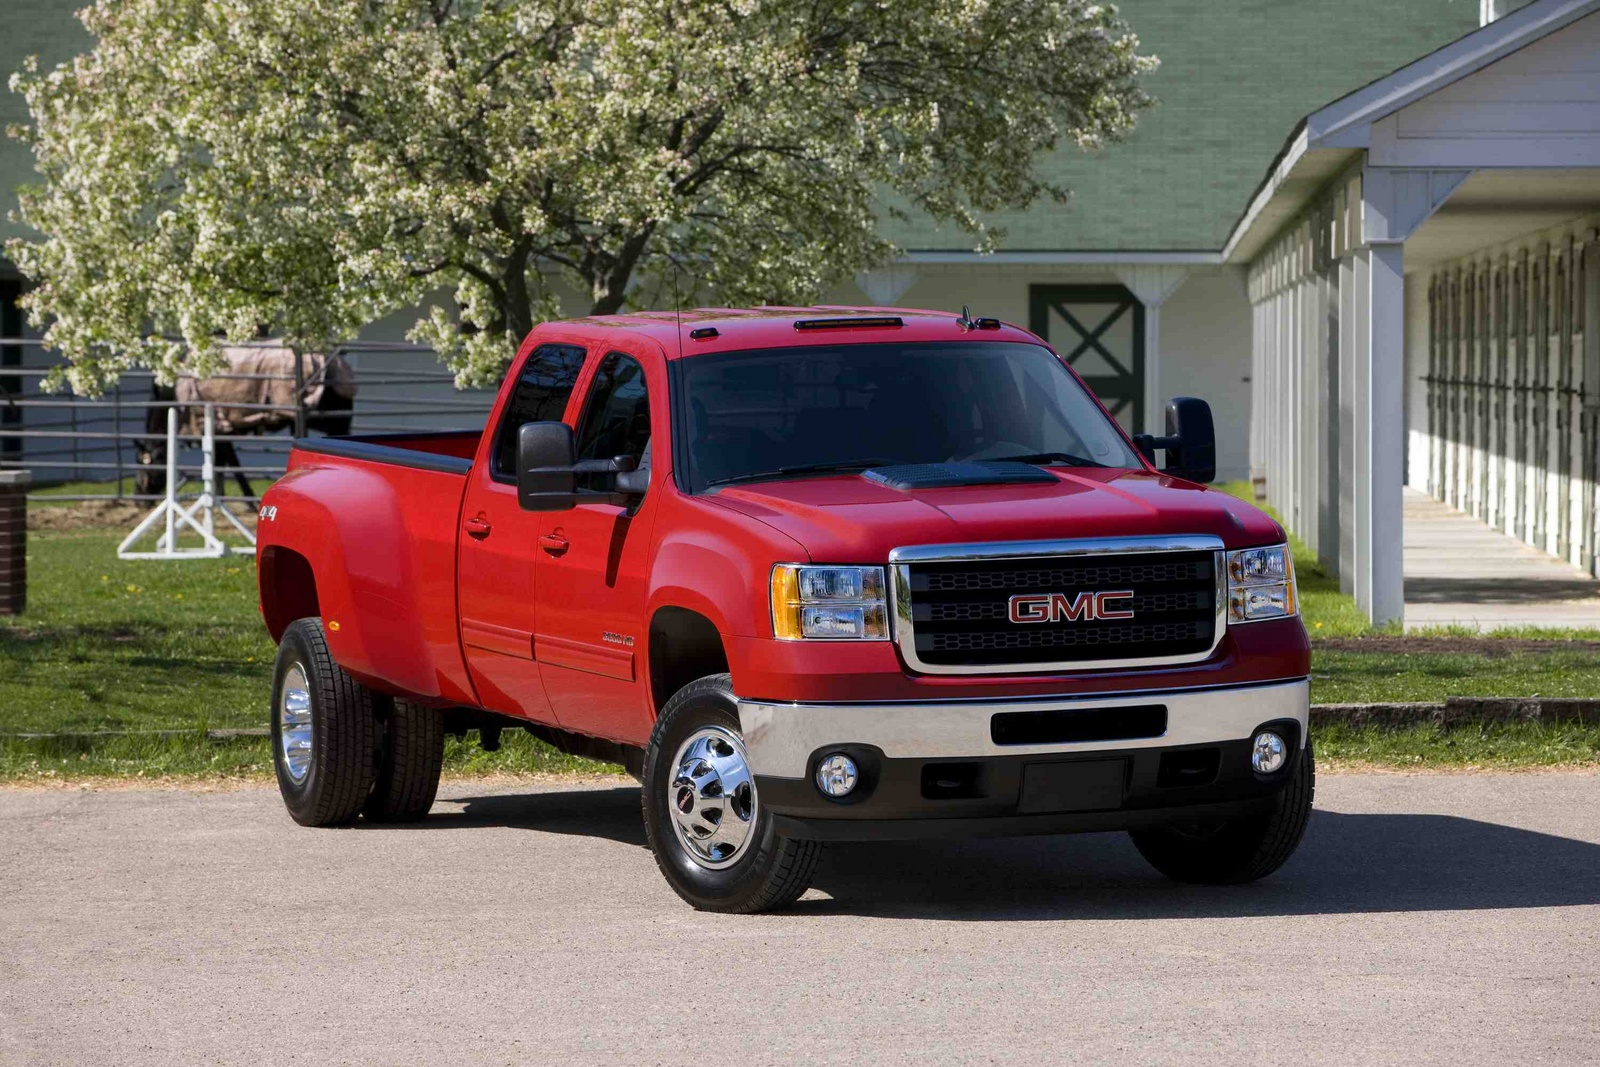 2008 Gmc Sierra 3500hd #8